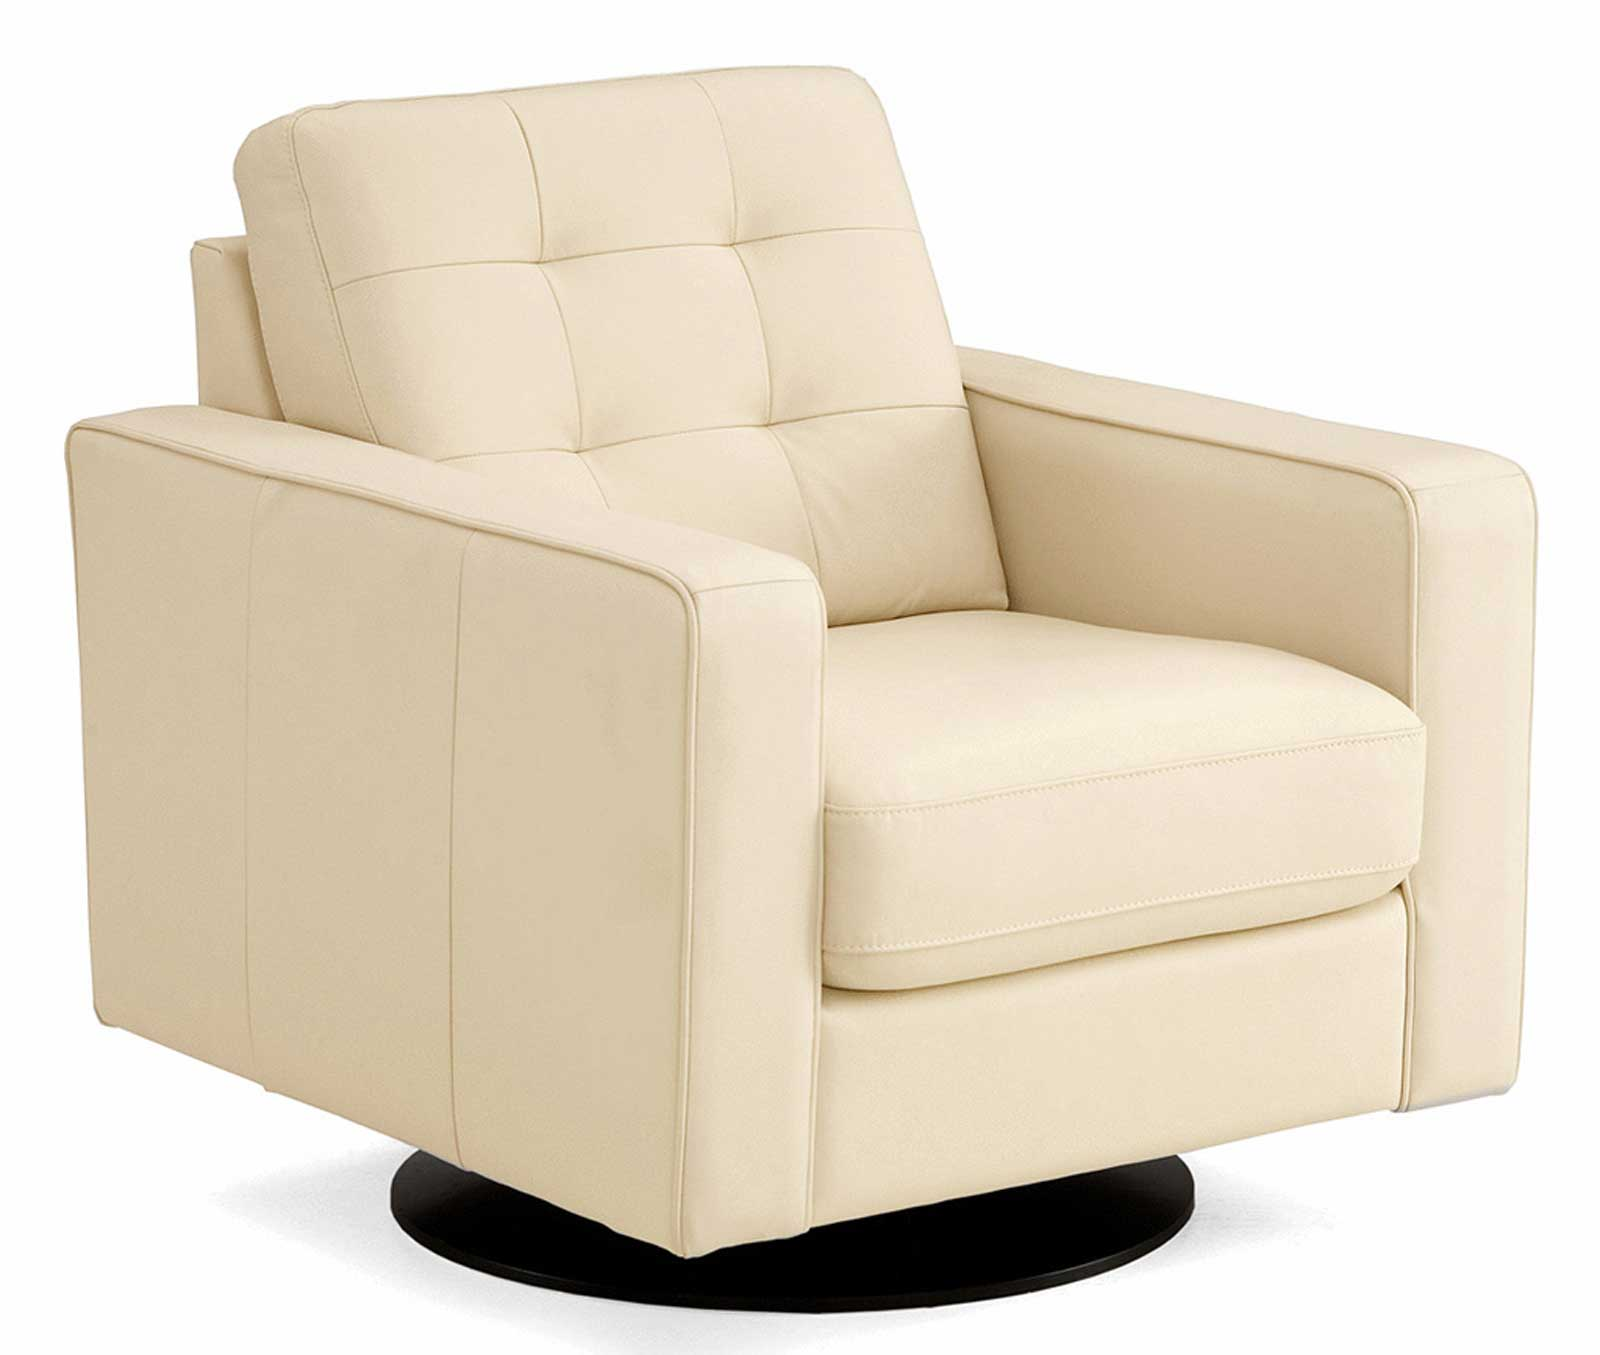 White Leather Swivel Chairs on Executive Design